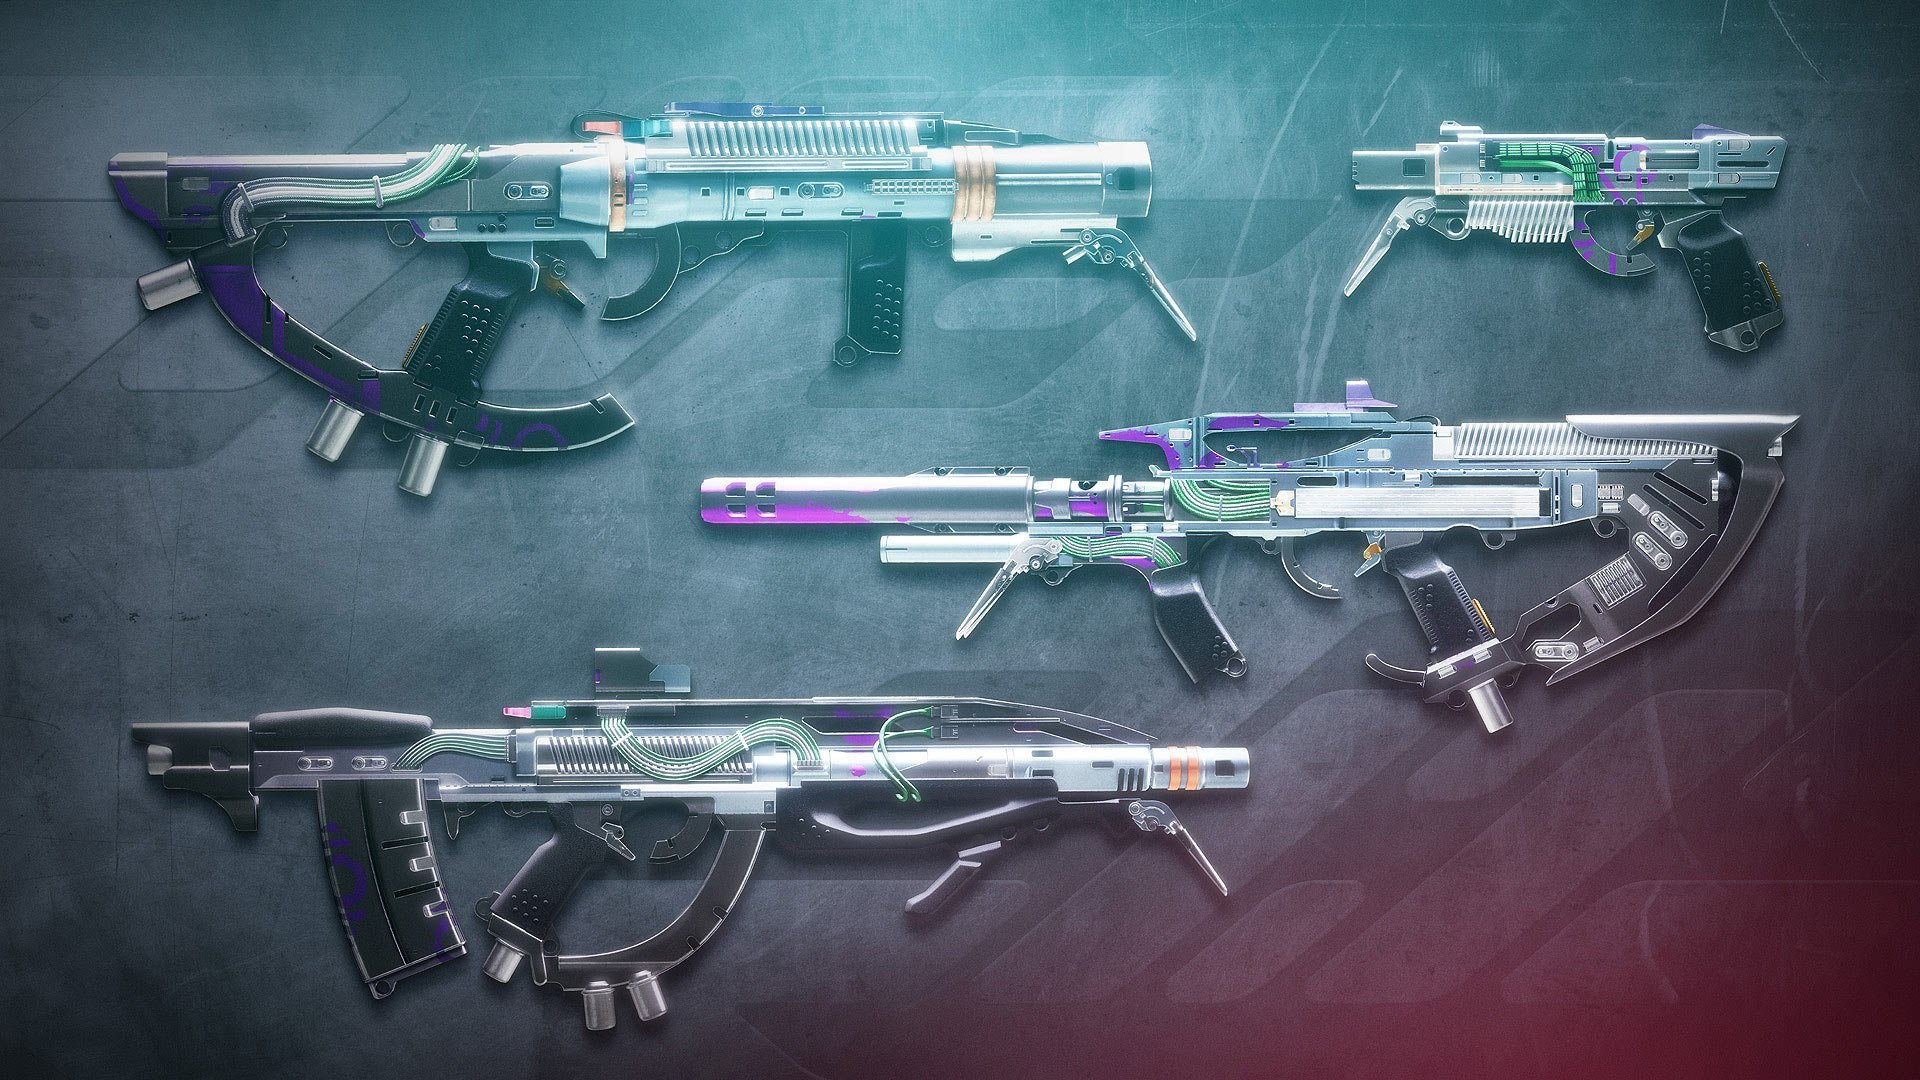 How to get the Chroma Rush in Destiny 2 guide